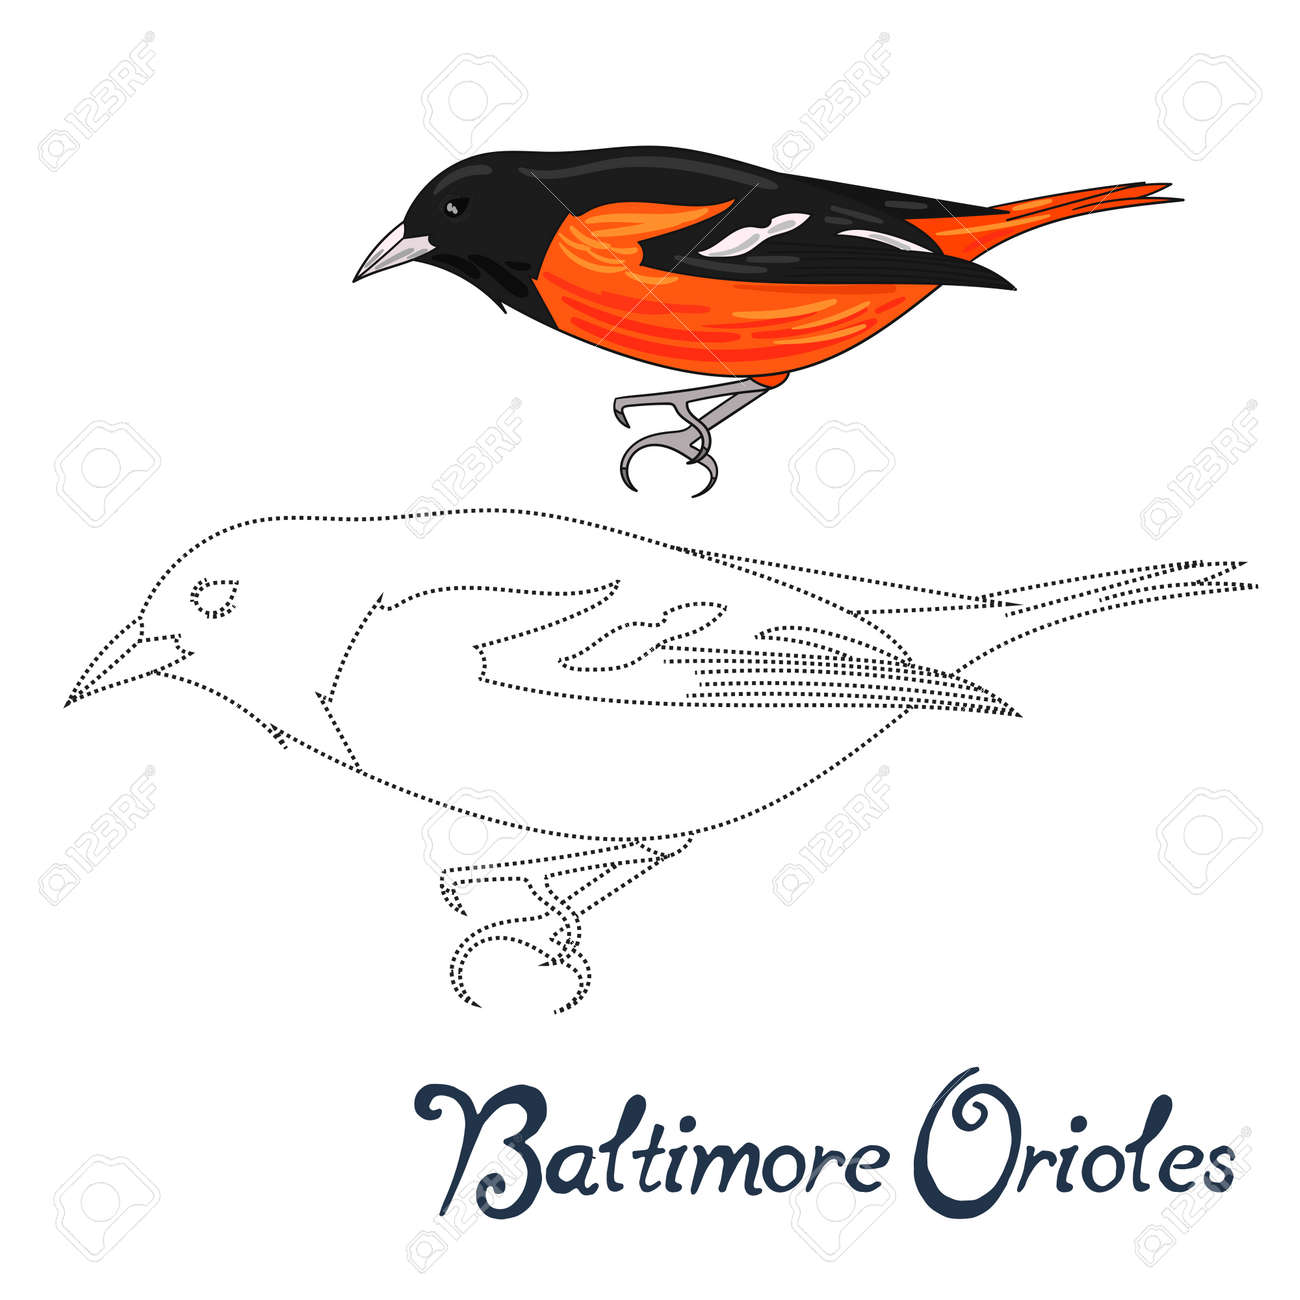 educational game connect the dots to draw baltimore orioles bird